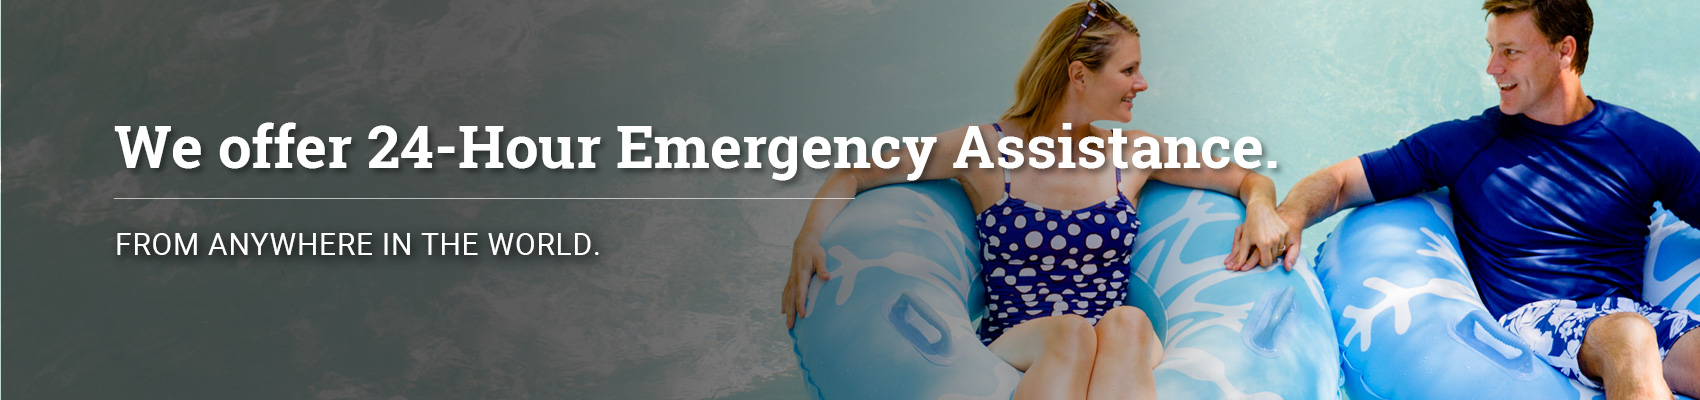 We offer 24-Hour Emergency Assistance.